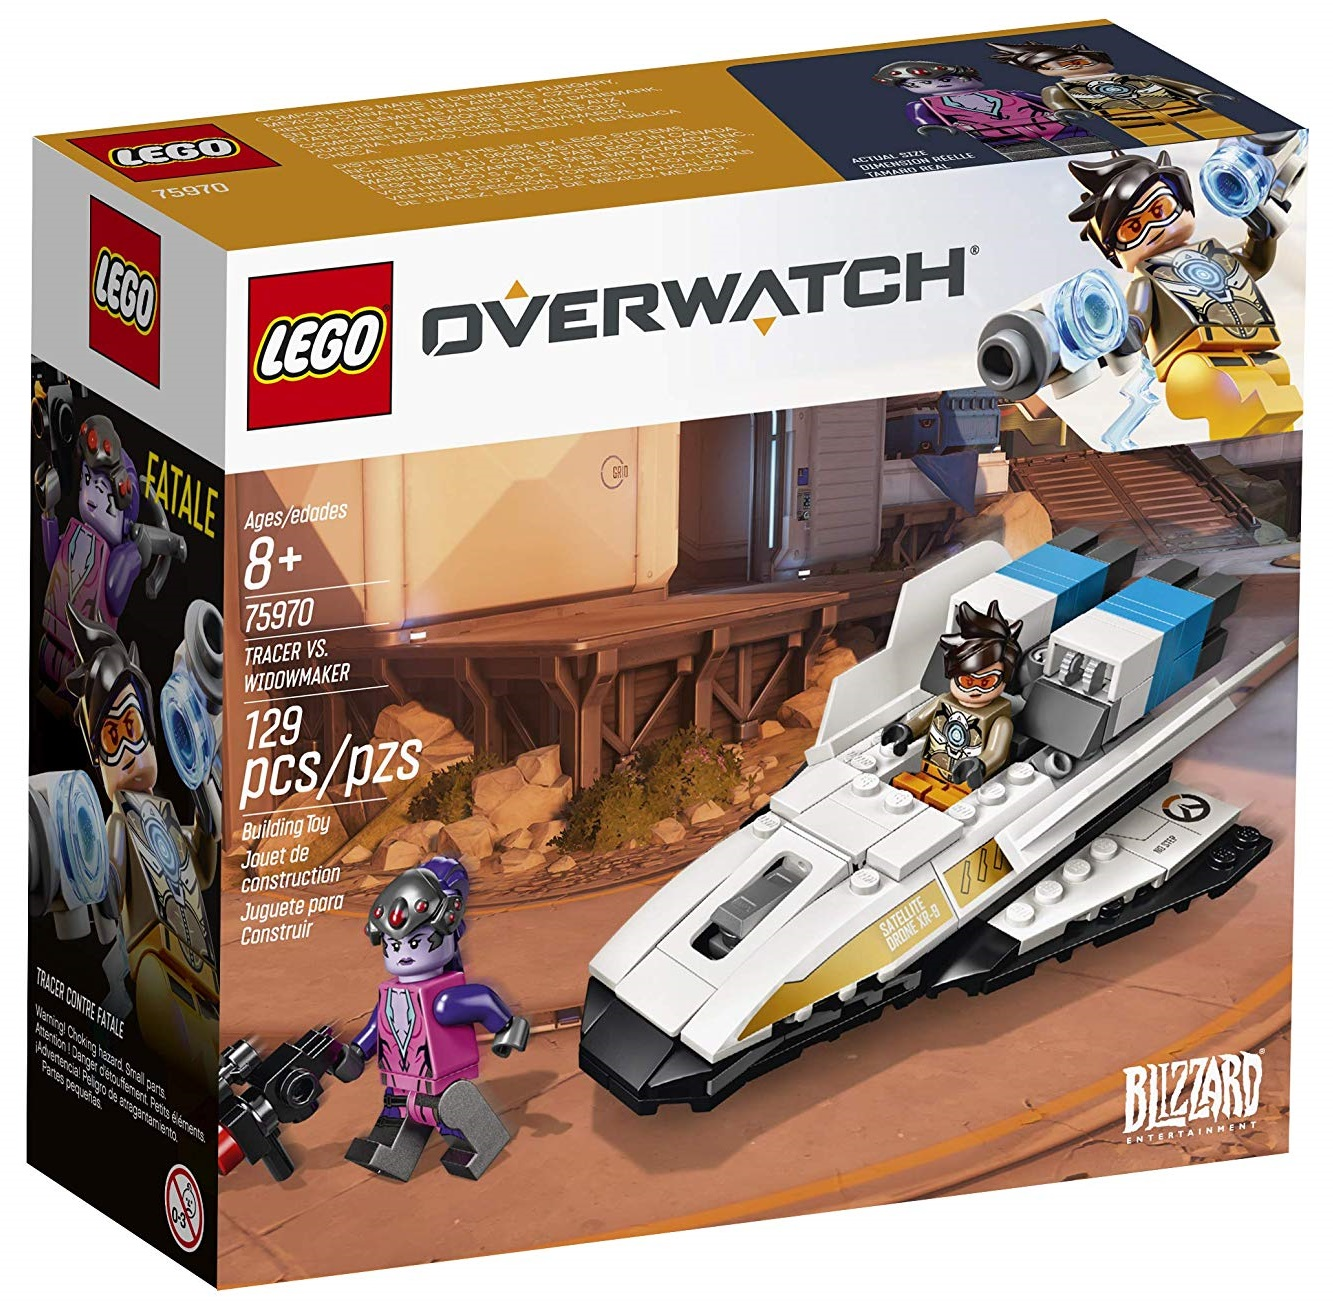 Set Lego de Overwatch: Tracer vs. Widowmaker